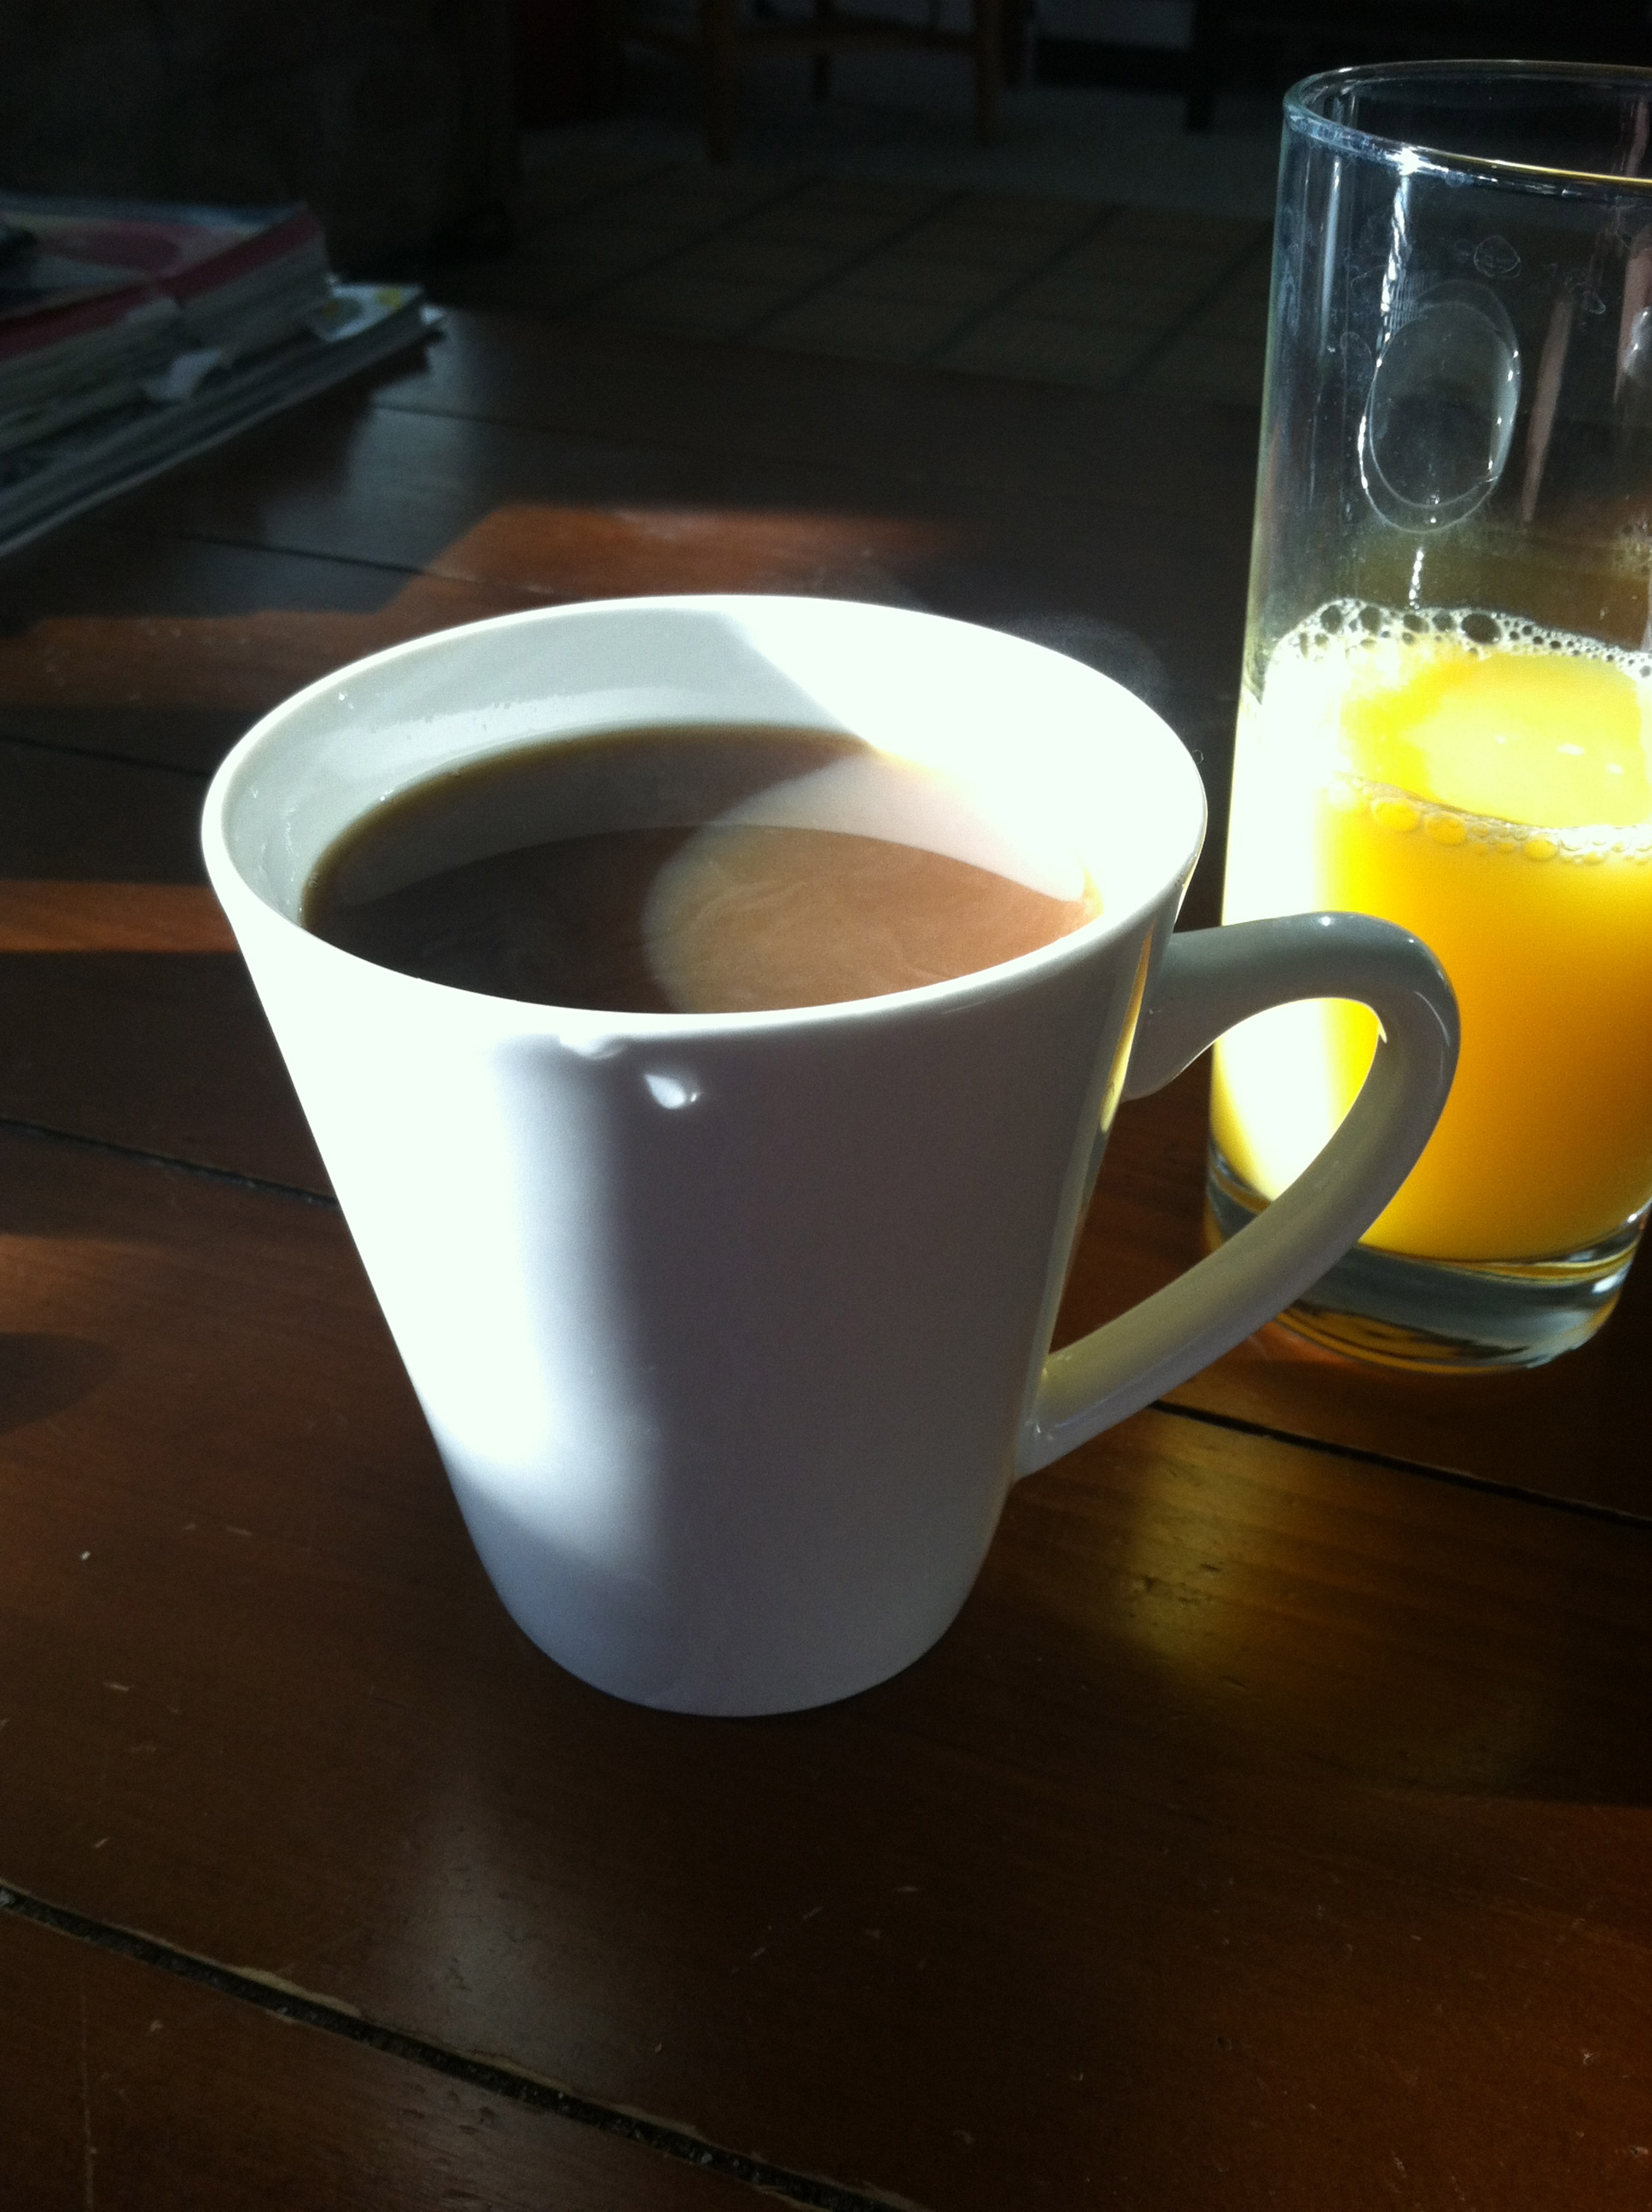 This isn't even from today, but my morning basically looks like this. Minus the orange juice and plus an english muffin.